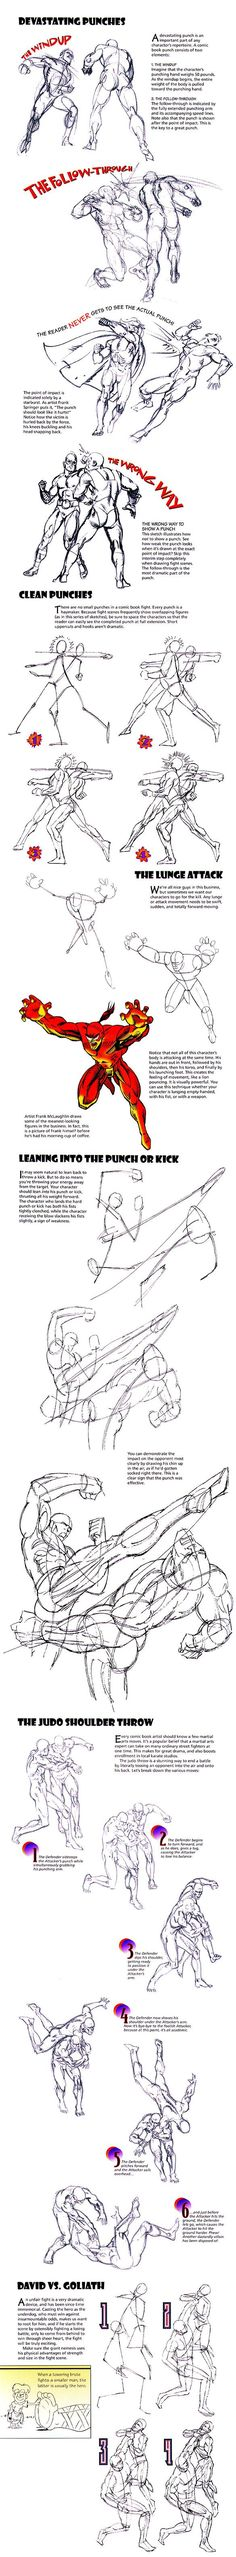 How to Draw the Human Body - Tutorial: The Fight Scene for Comic / Manga Character Reference (scheduled via http://www.tailwindapp.com?utm_source=pinterest&utm_medium=twpin&utm_content=post1339925&utm_campaign=scheduler_attribution)